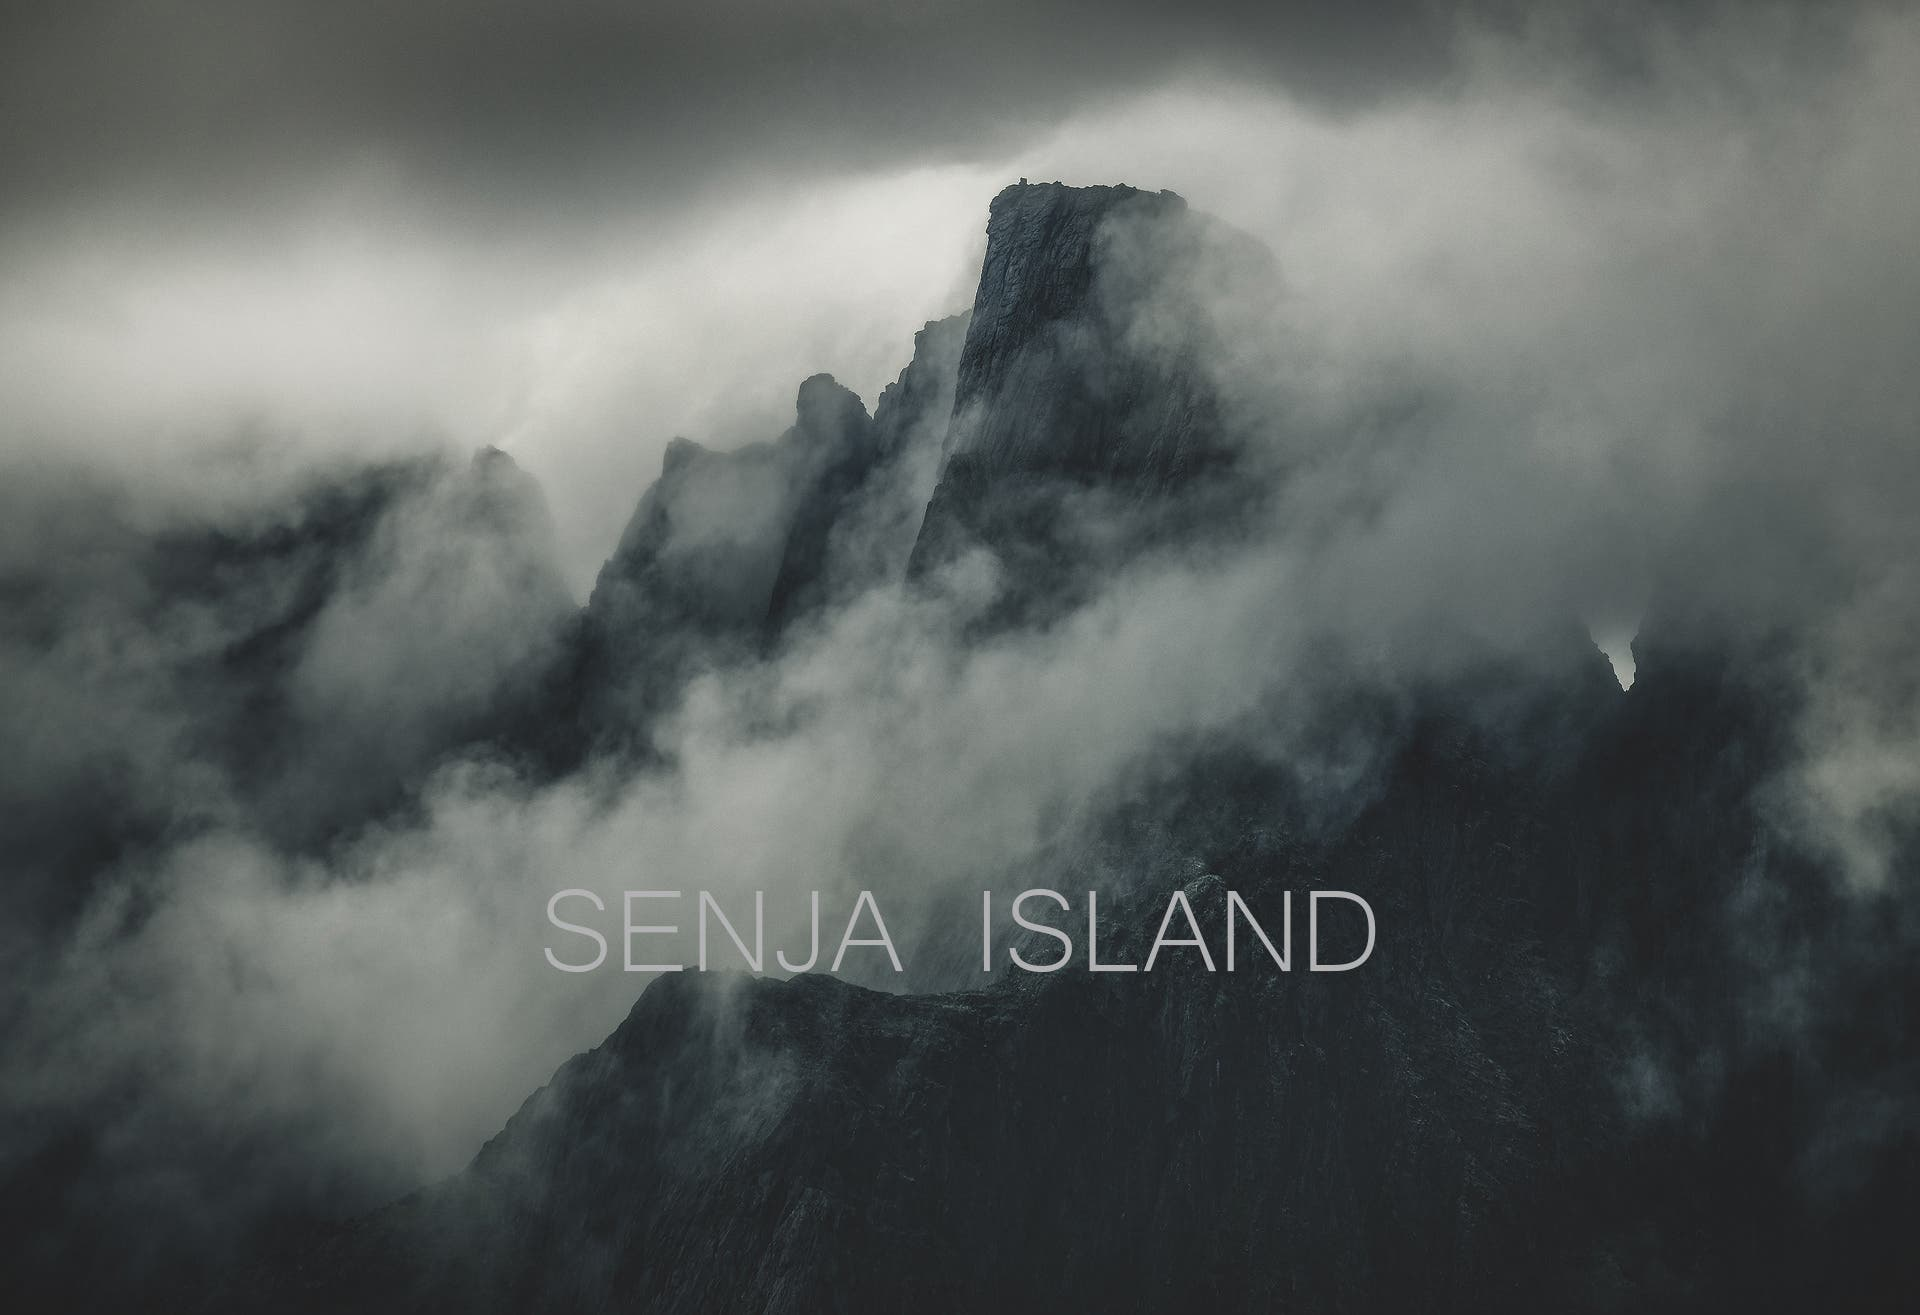 Arild Heitmann Showcases the Stunning Mountain Scenery of Senja Island